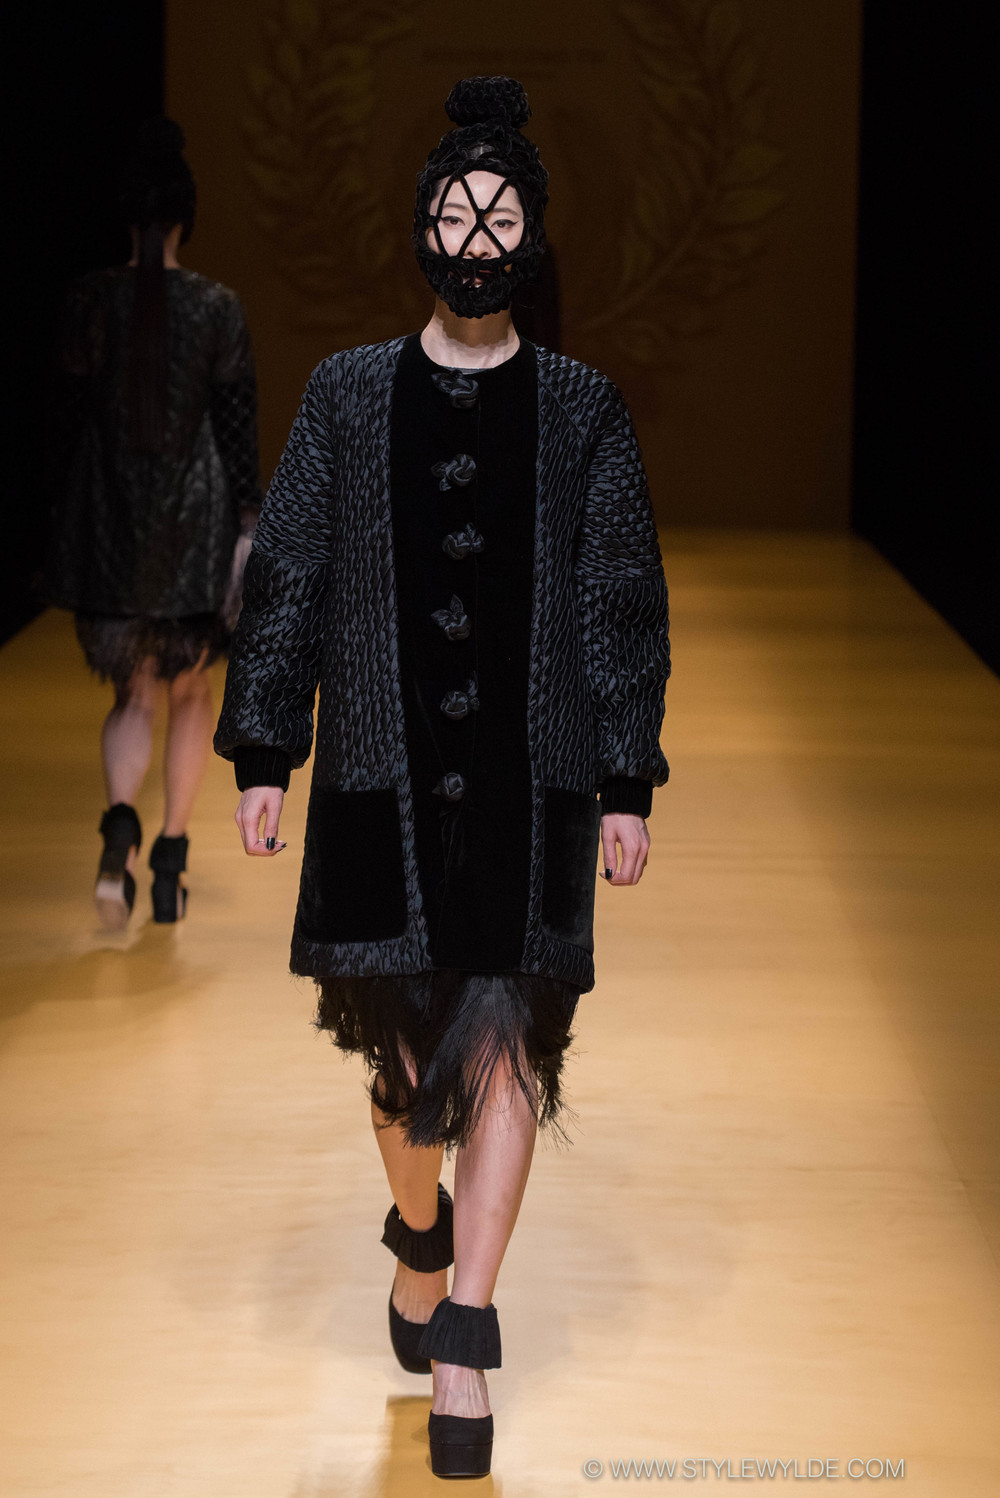 STYLEWYLDE-AsiaFashionMeets-Tokyo_Aw16-32.jpg